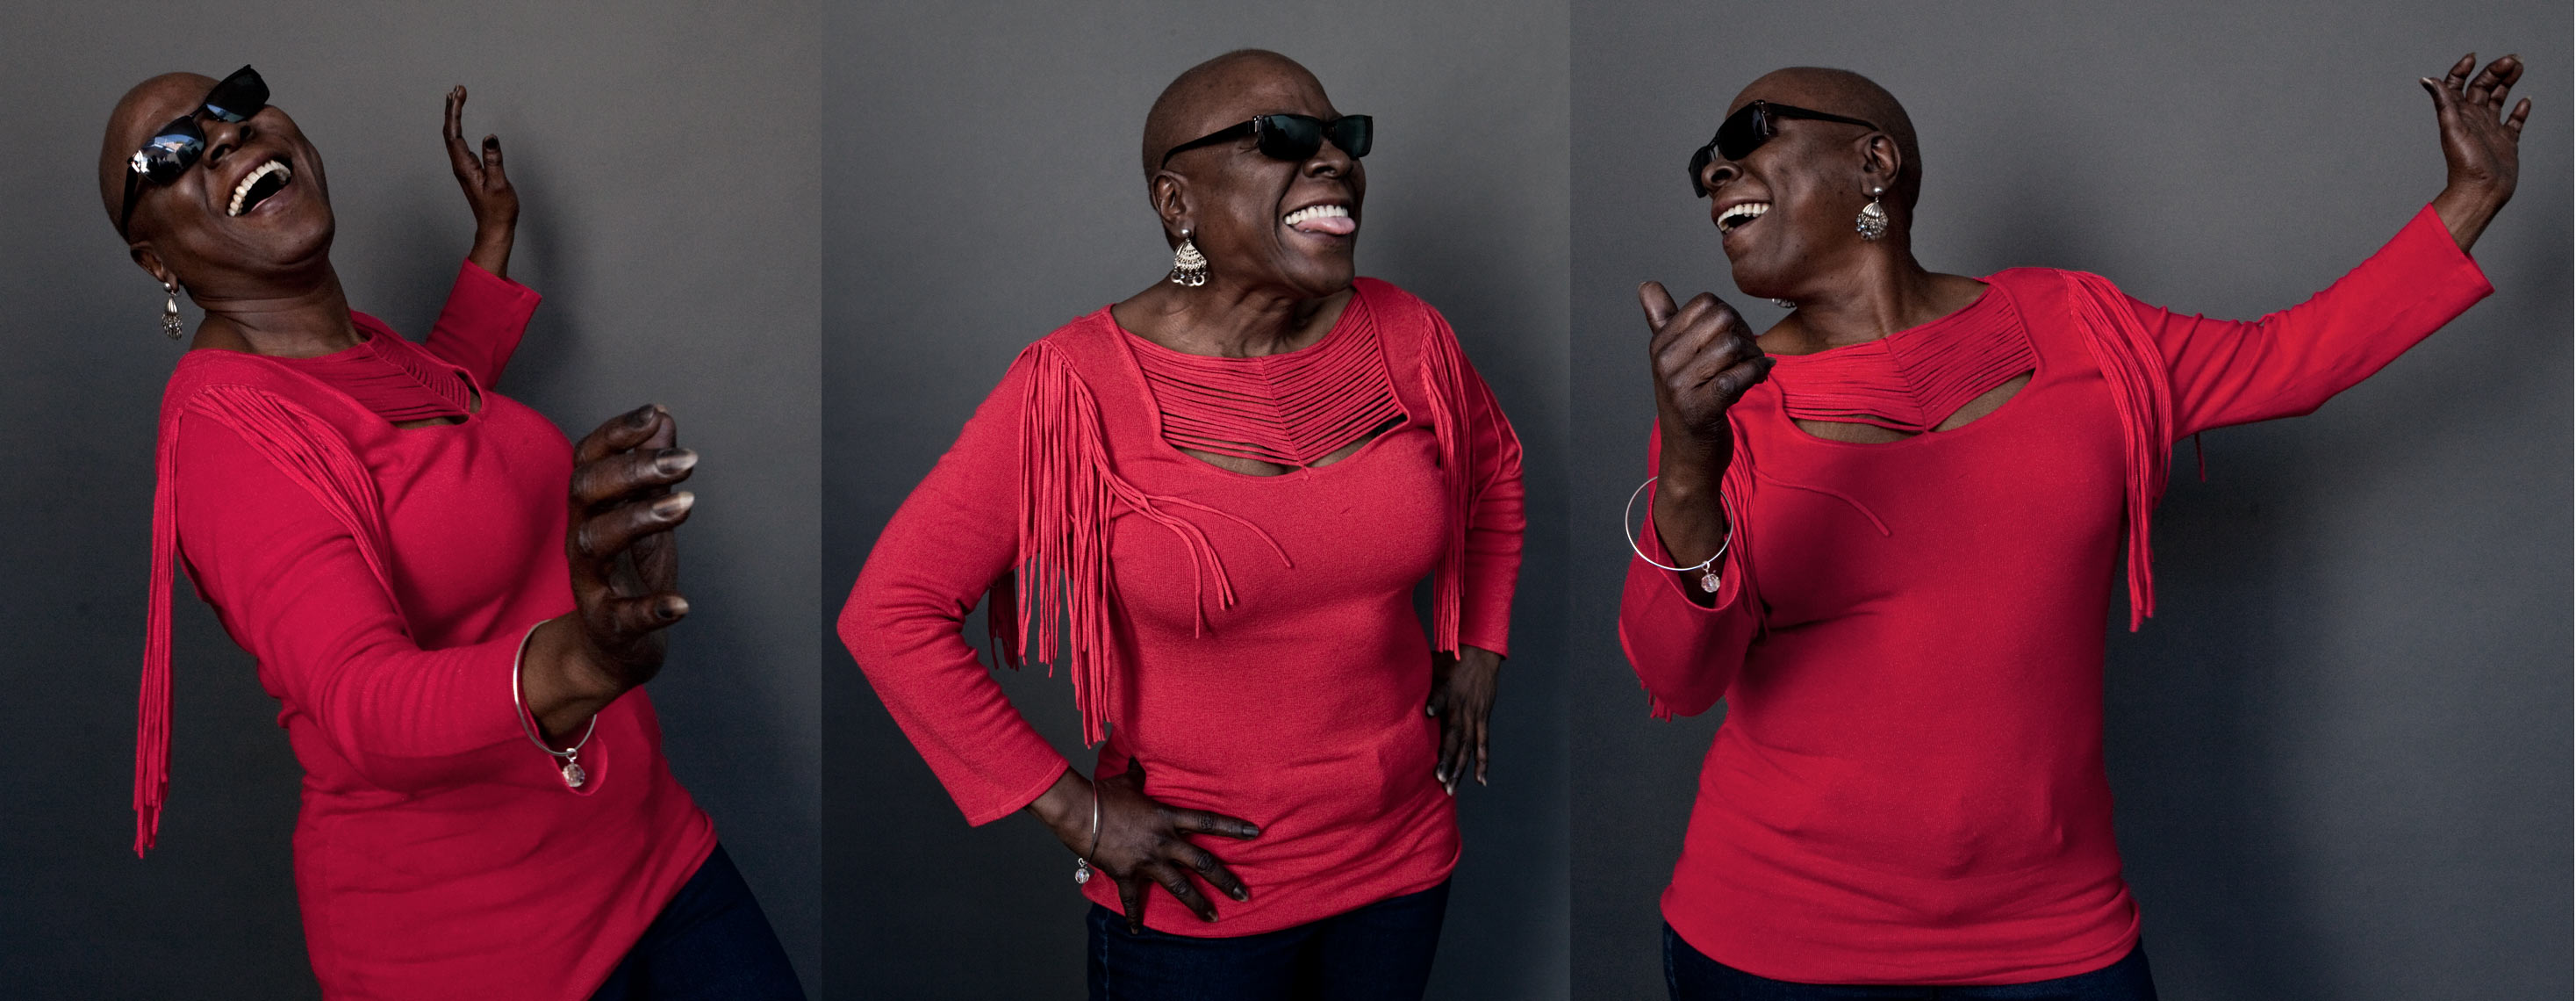 sharon-jones-new-website